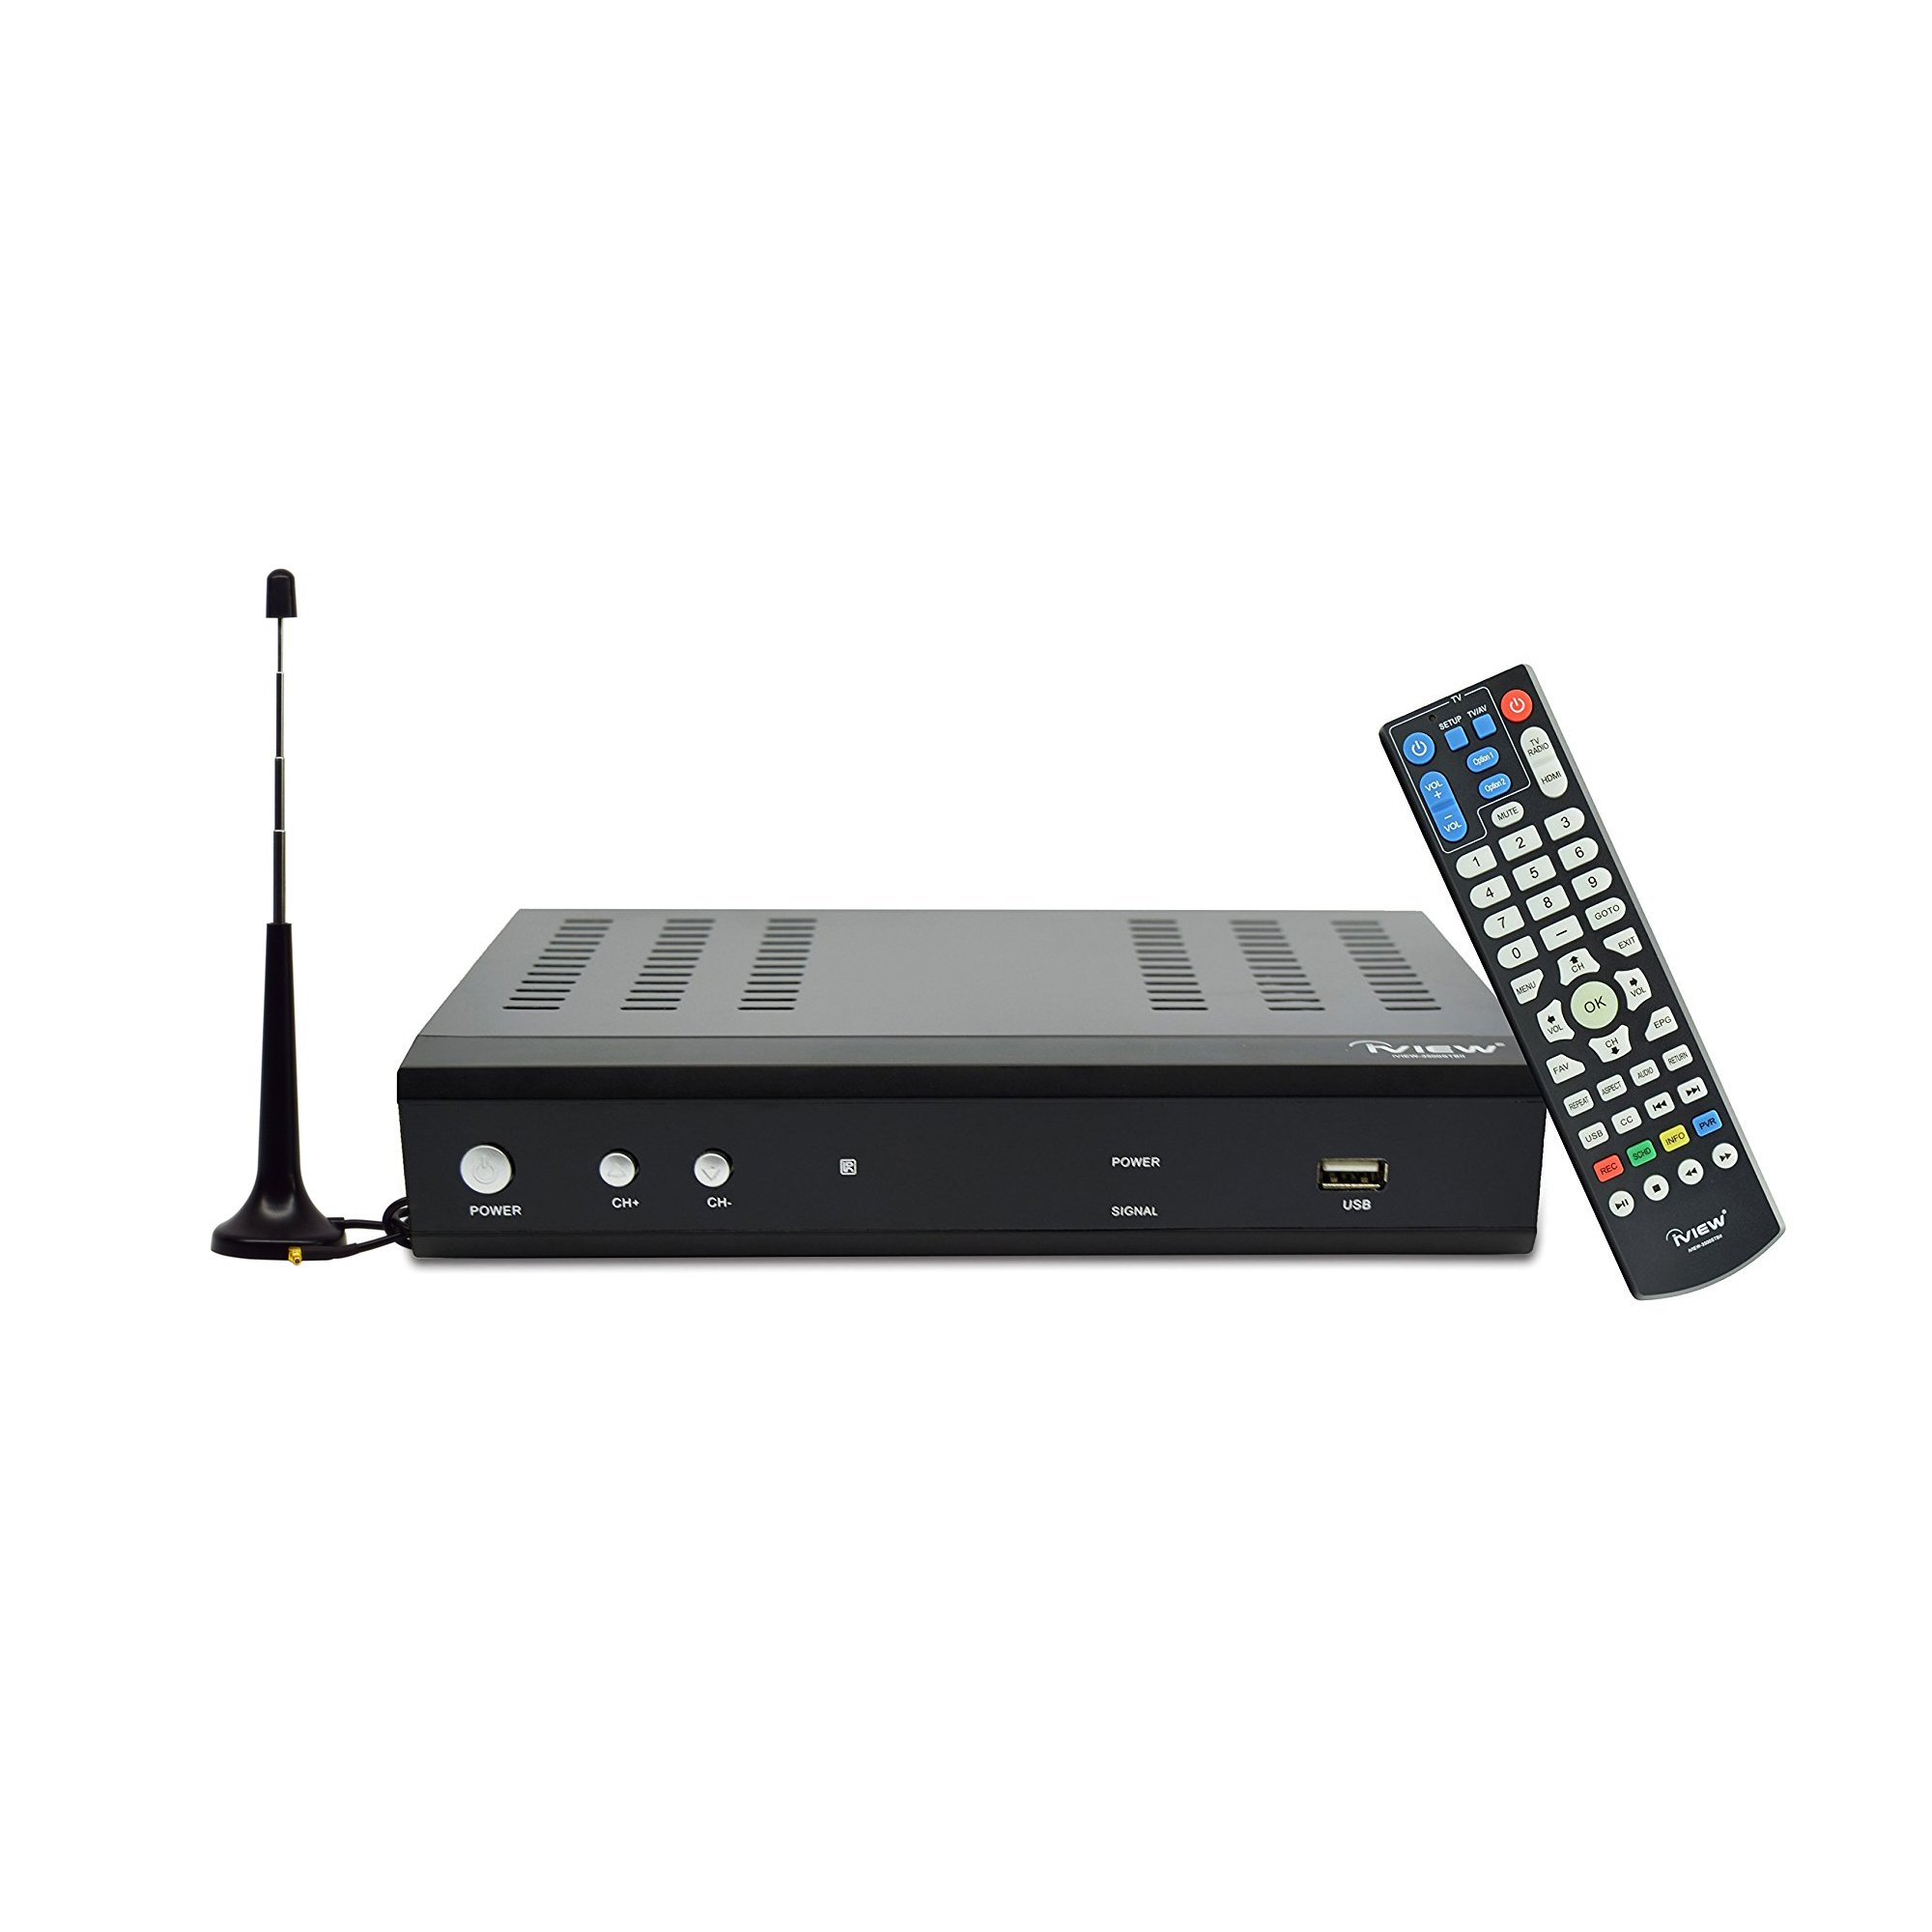 iView Premium Digital Converter Box with Recording, Analog to Digital, ATSC Tuner, QAM Compatible, Channel 3/4, HDMI, USB, Free Antenna Included